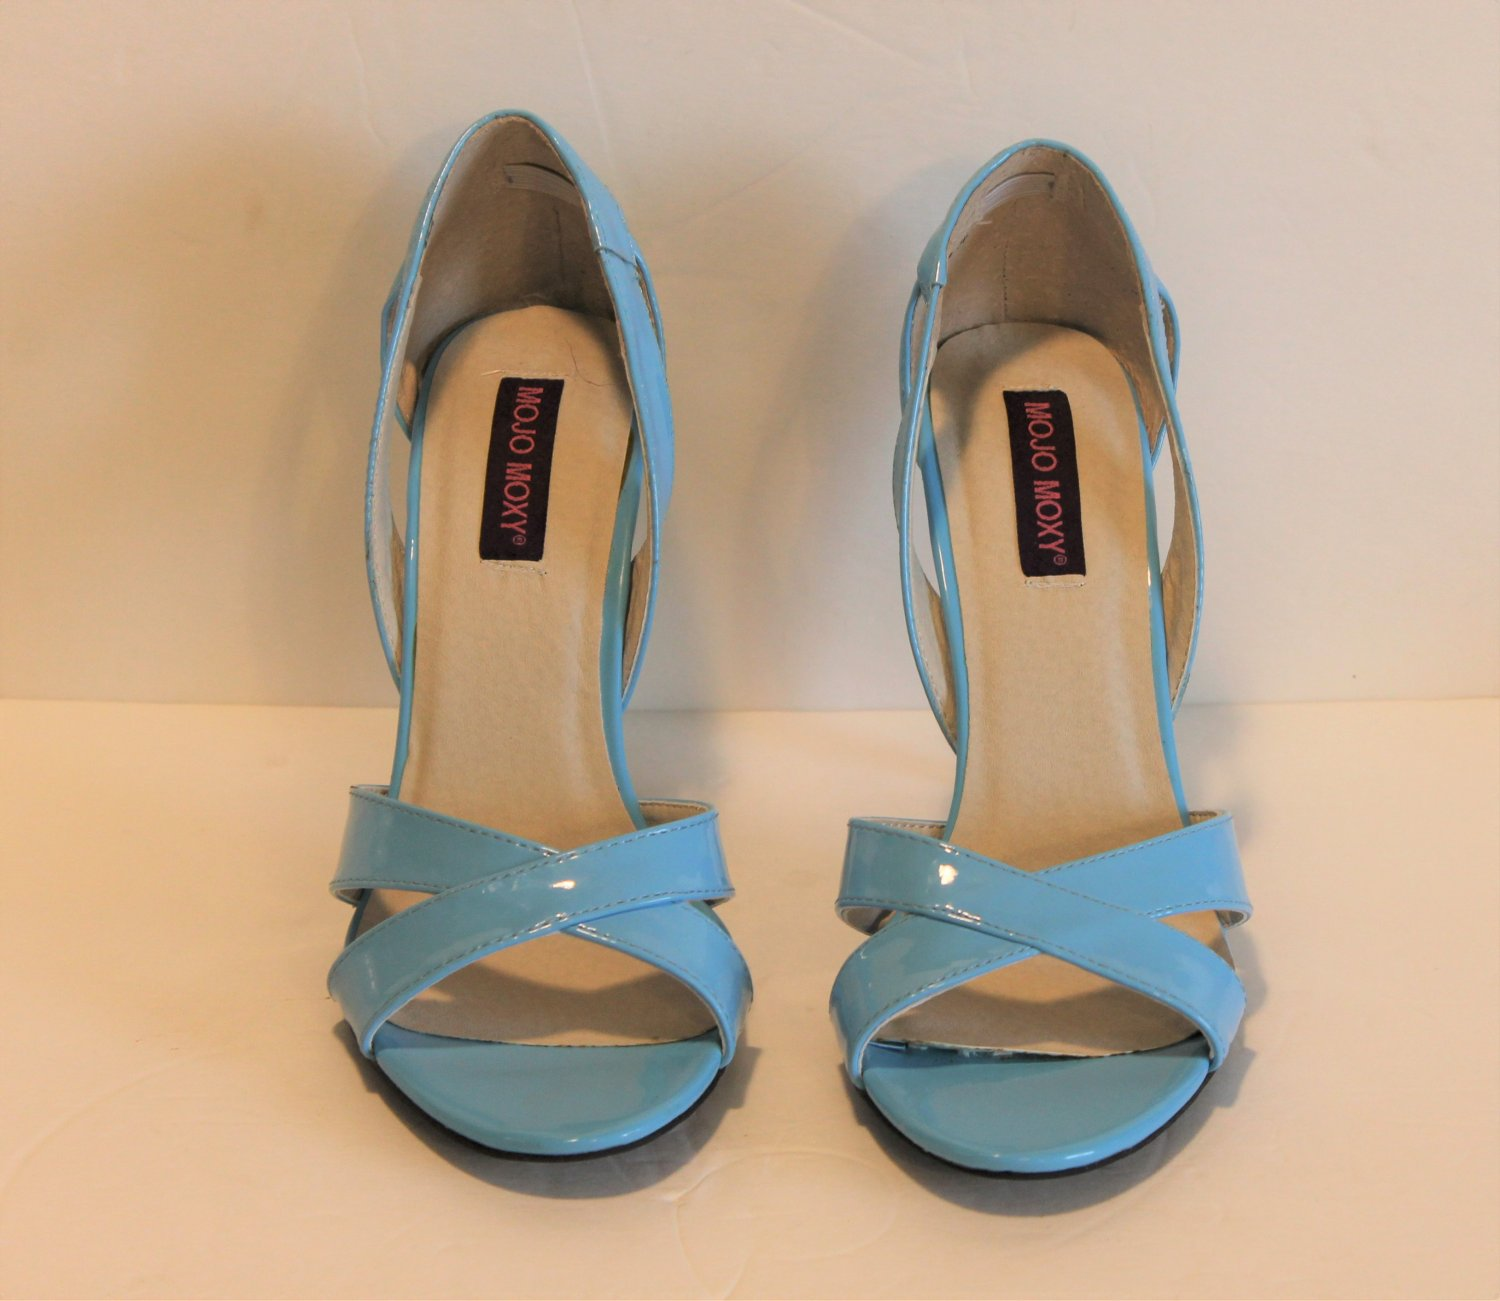 Mojo Moxy Lucy Blue Strappy Dress Pump Sandal Size 8.5